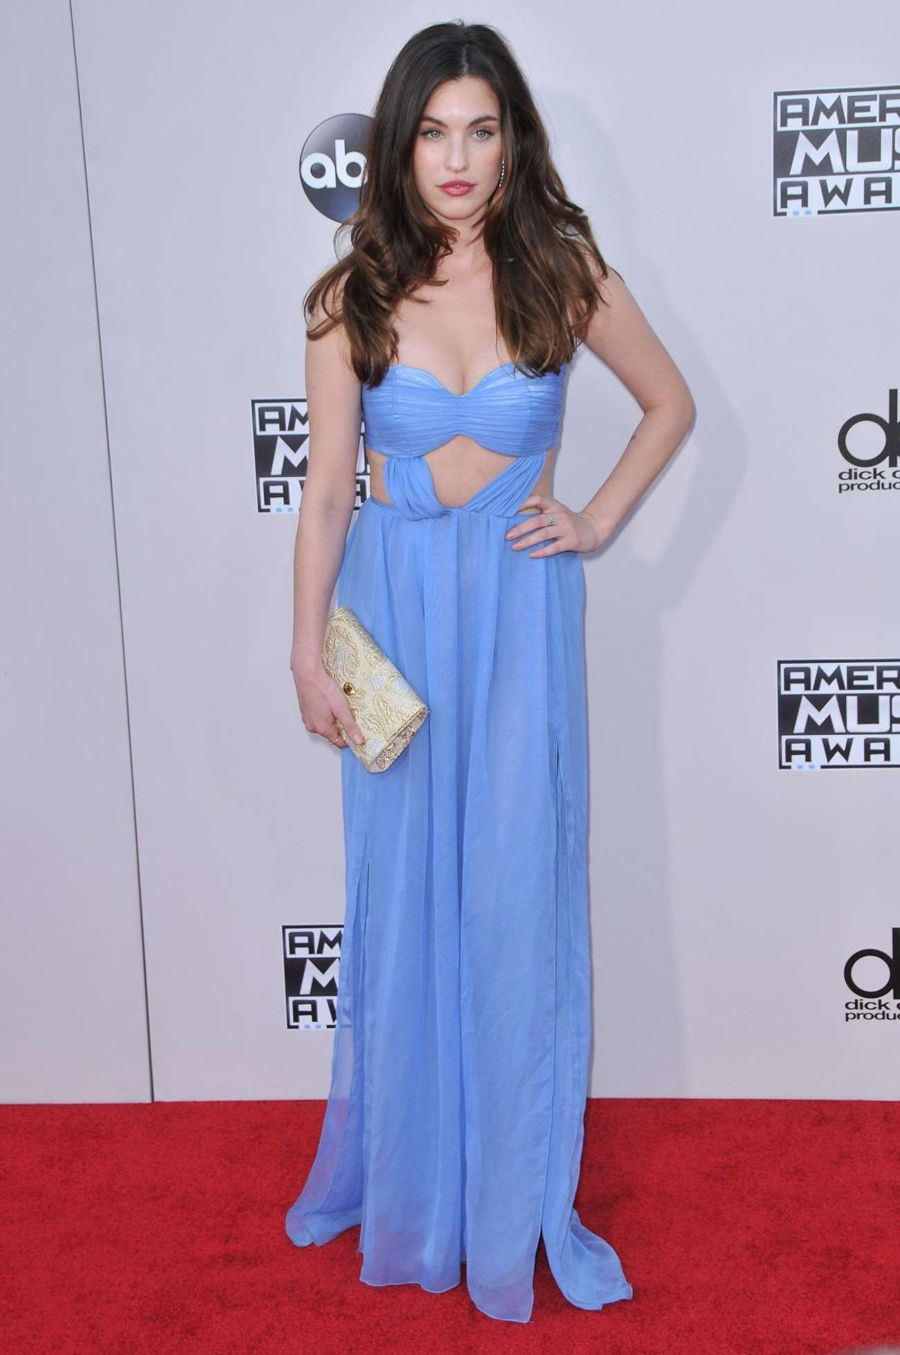 Rainey Qualley - 2015 American Music Awards in L.A.